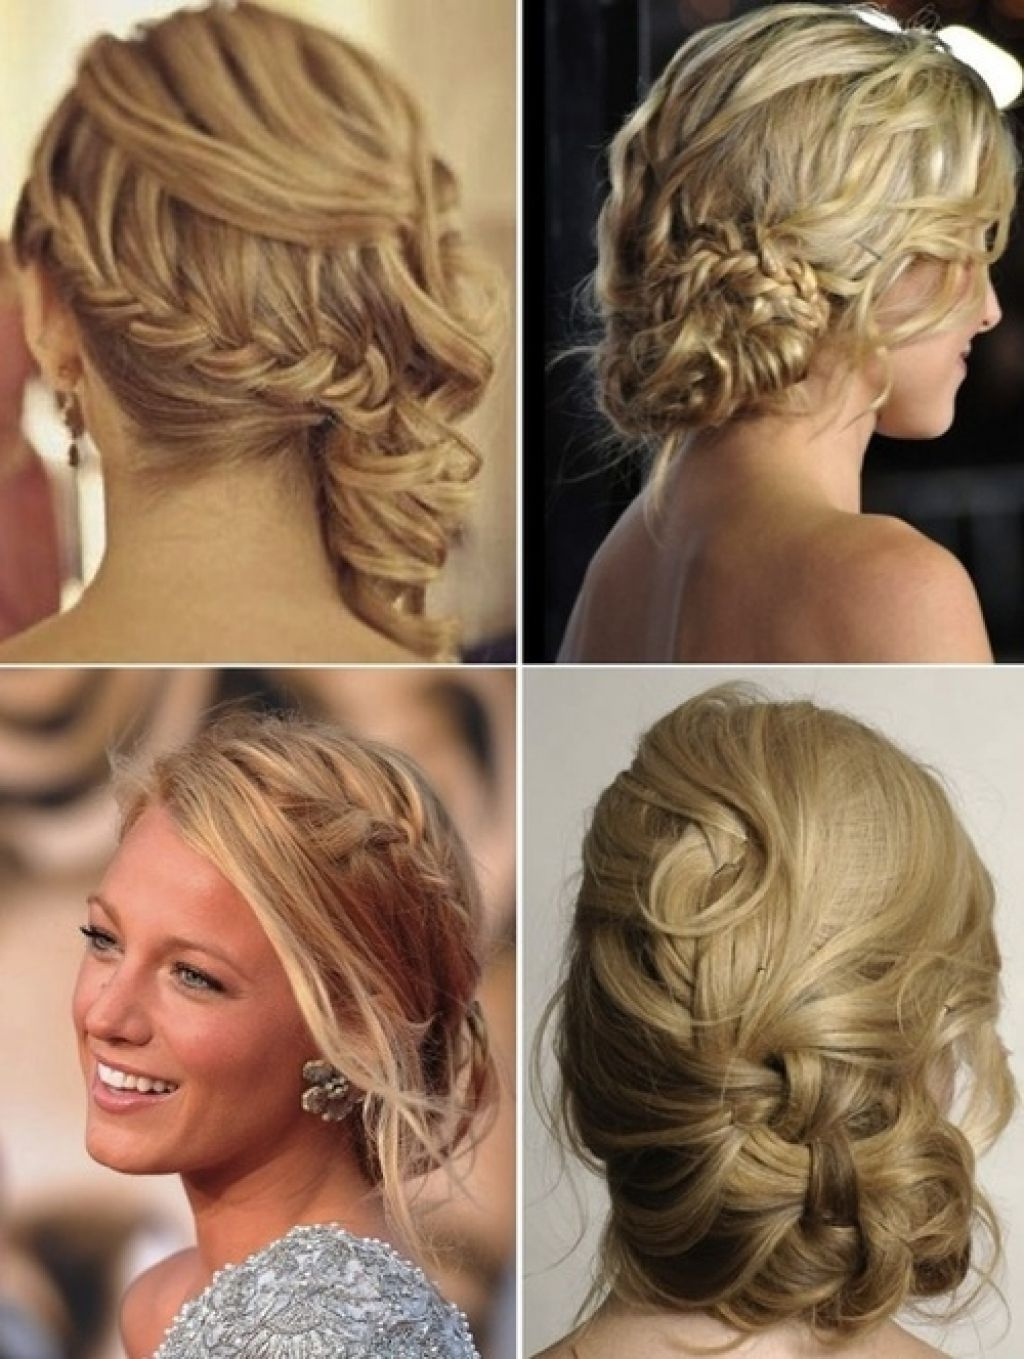 Fashionable Wedding Easy Hairstyles For Medium Hair Pertaining To Casual Wedding Hairstyles For Long Hair – Hairstyle For Women & Man (Gallery 4 of 15)